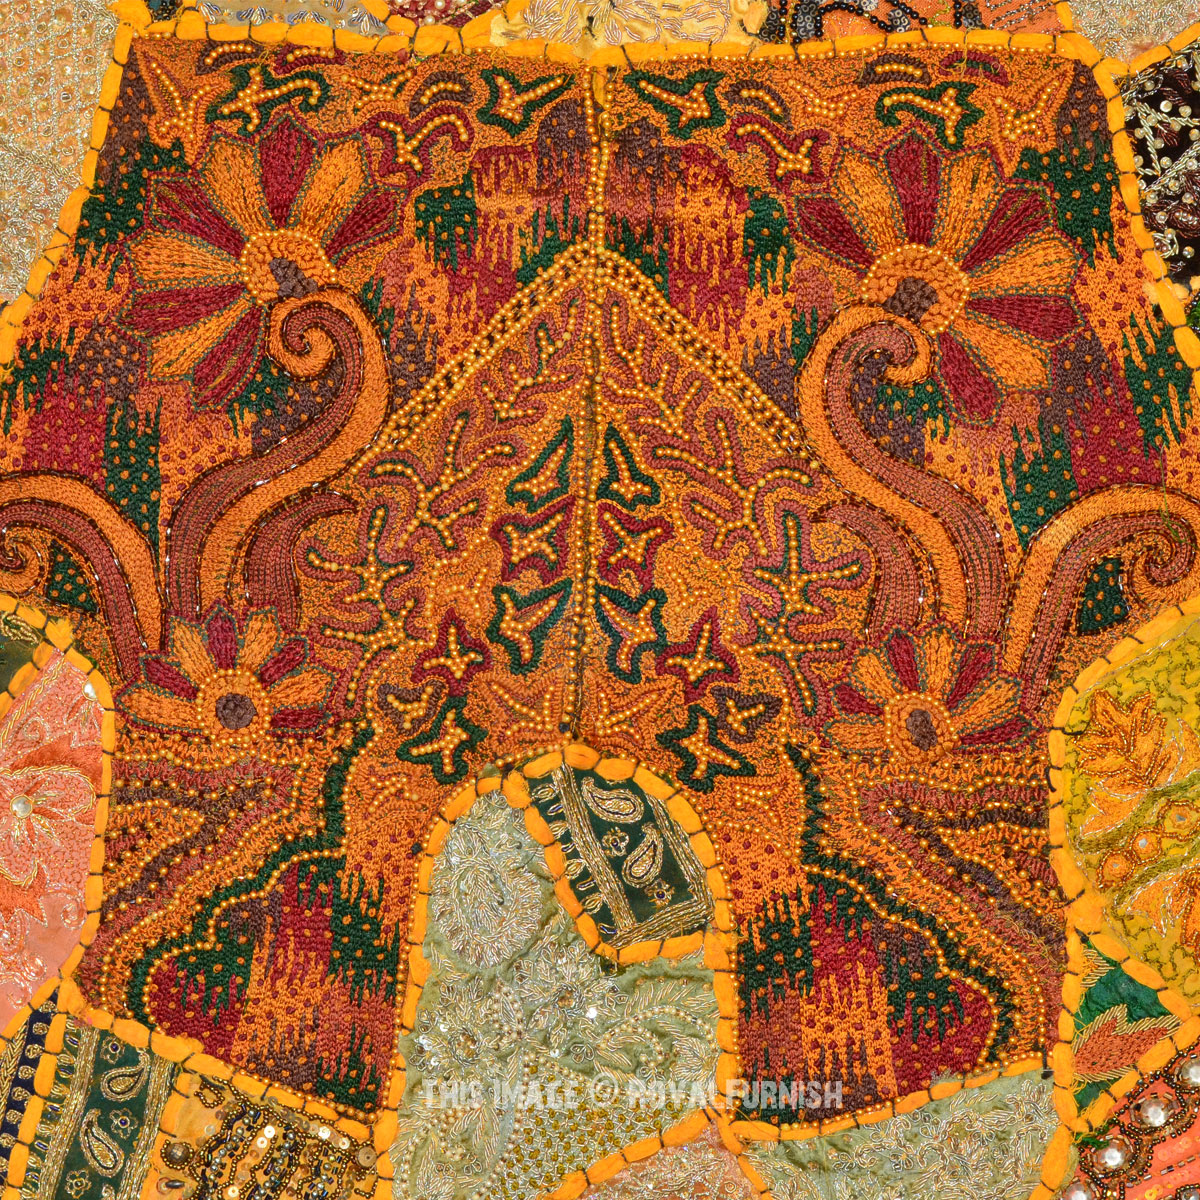 60x40 Quot Antique Vintage Heavy Bead Works Patchwork Tapestry